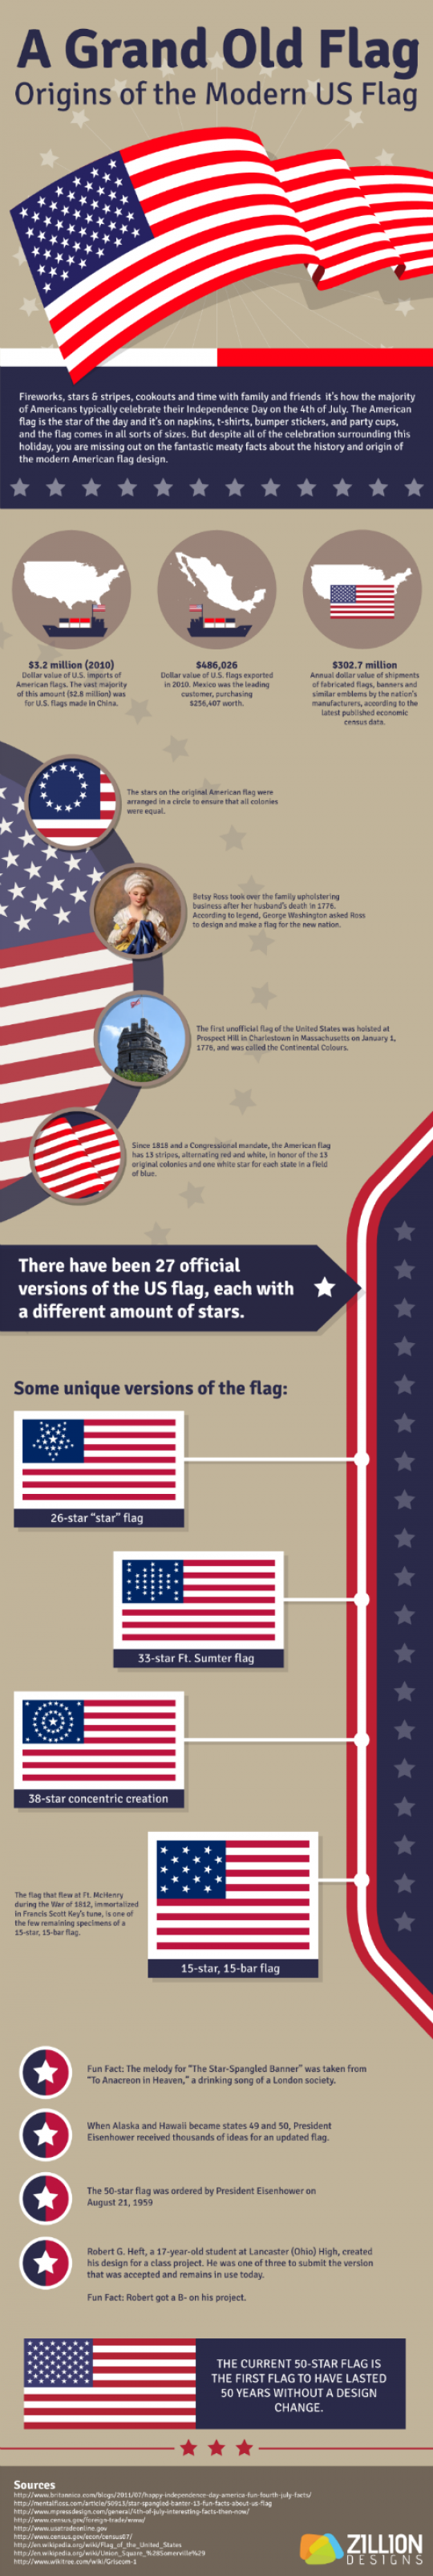 A Grand Old Flag: Origins of the Modern US Flag